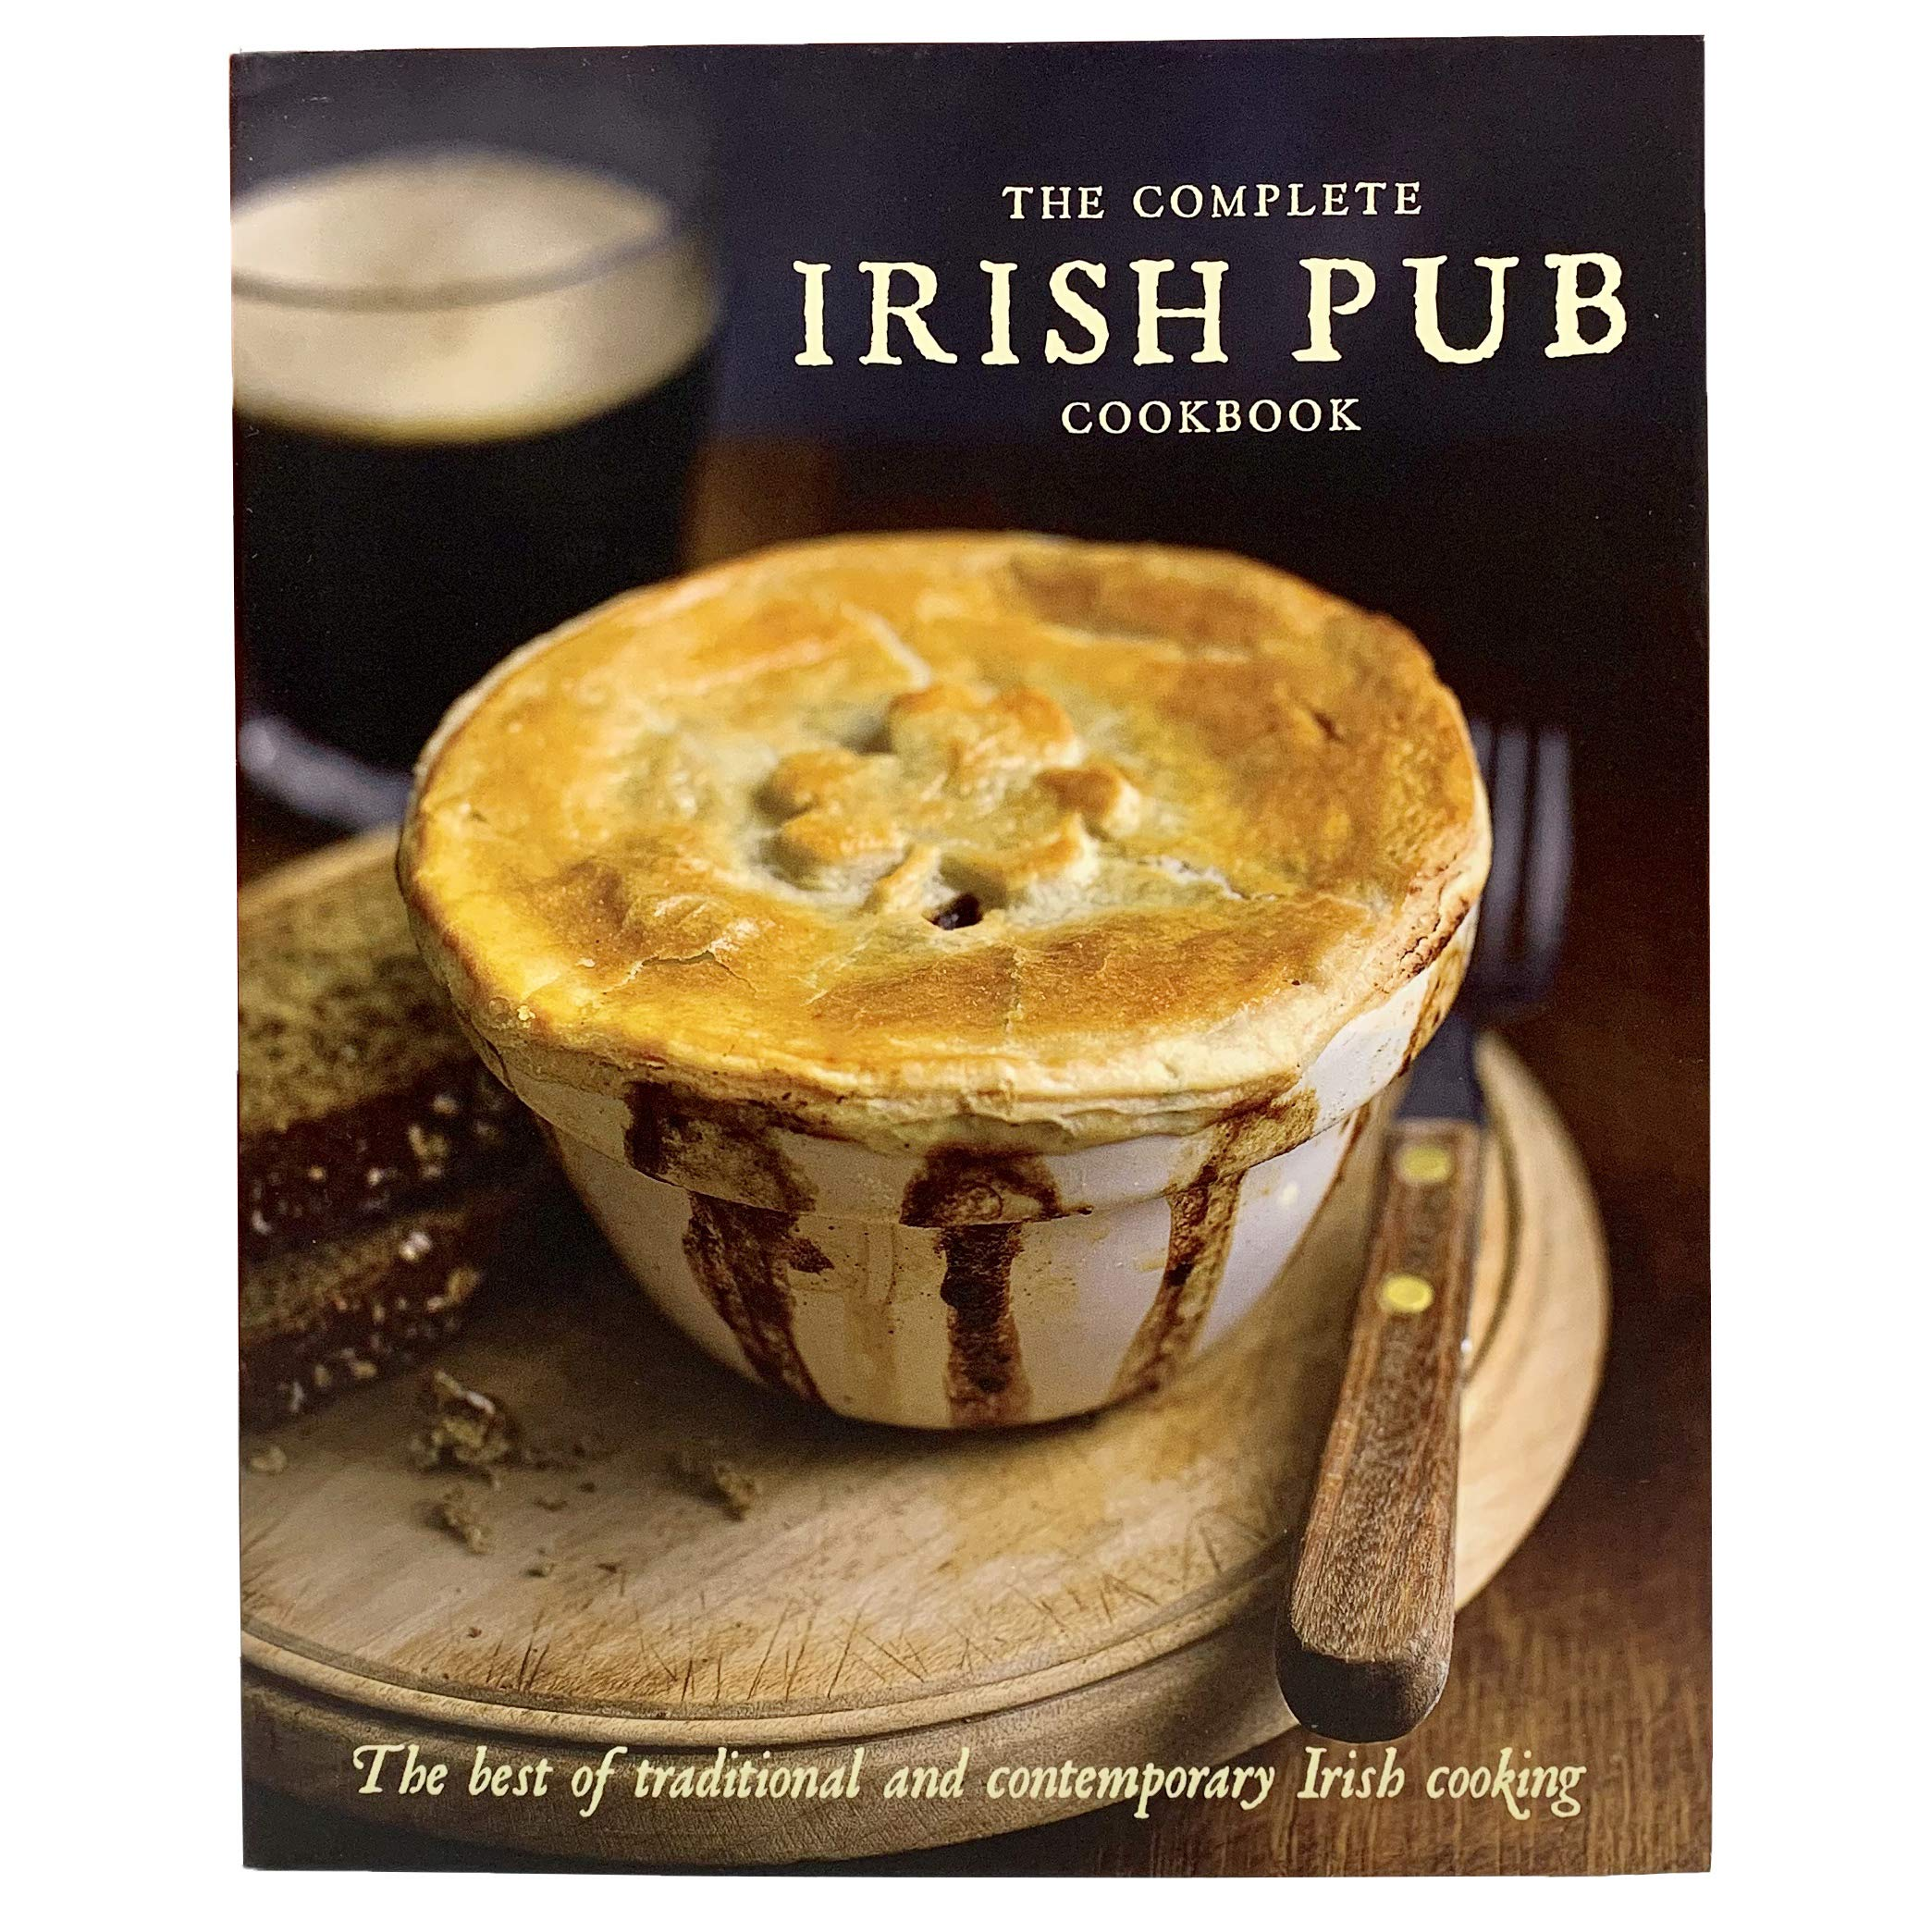 Image OfThe Complete Irish Pub Cookbook